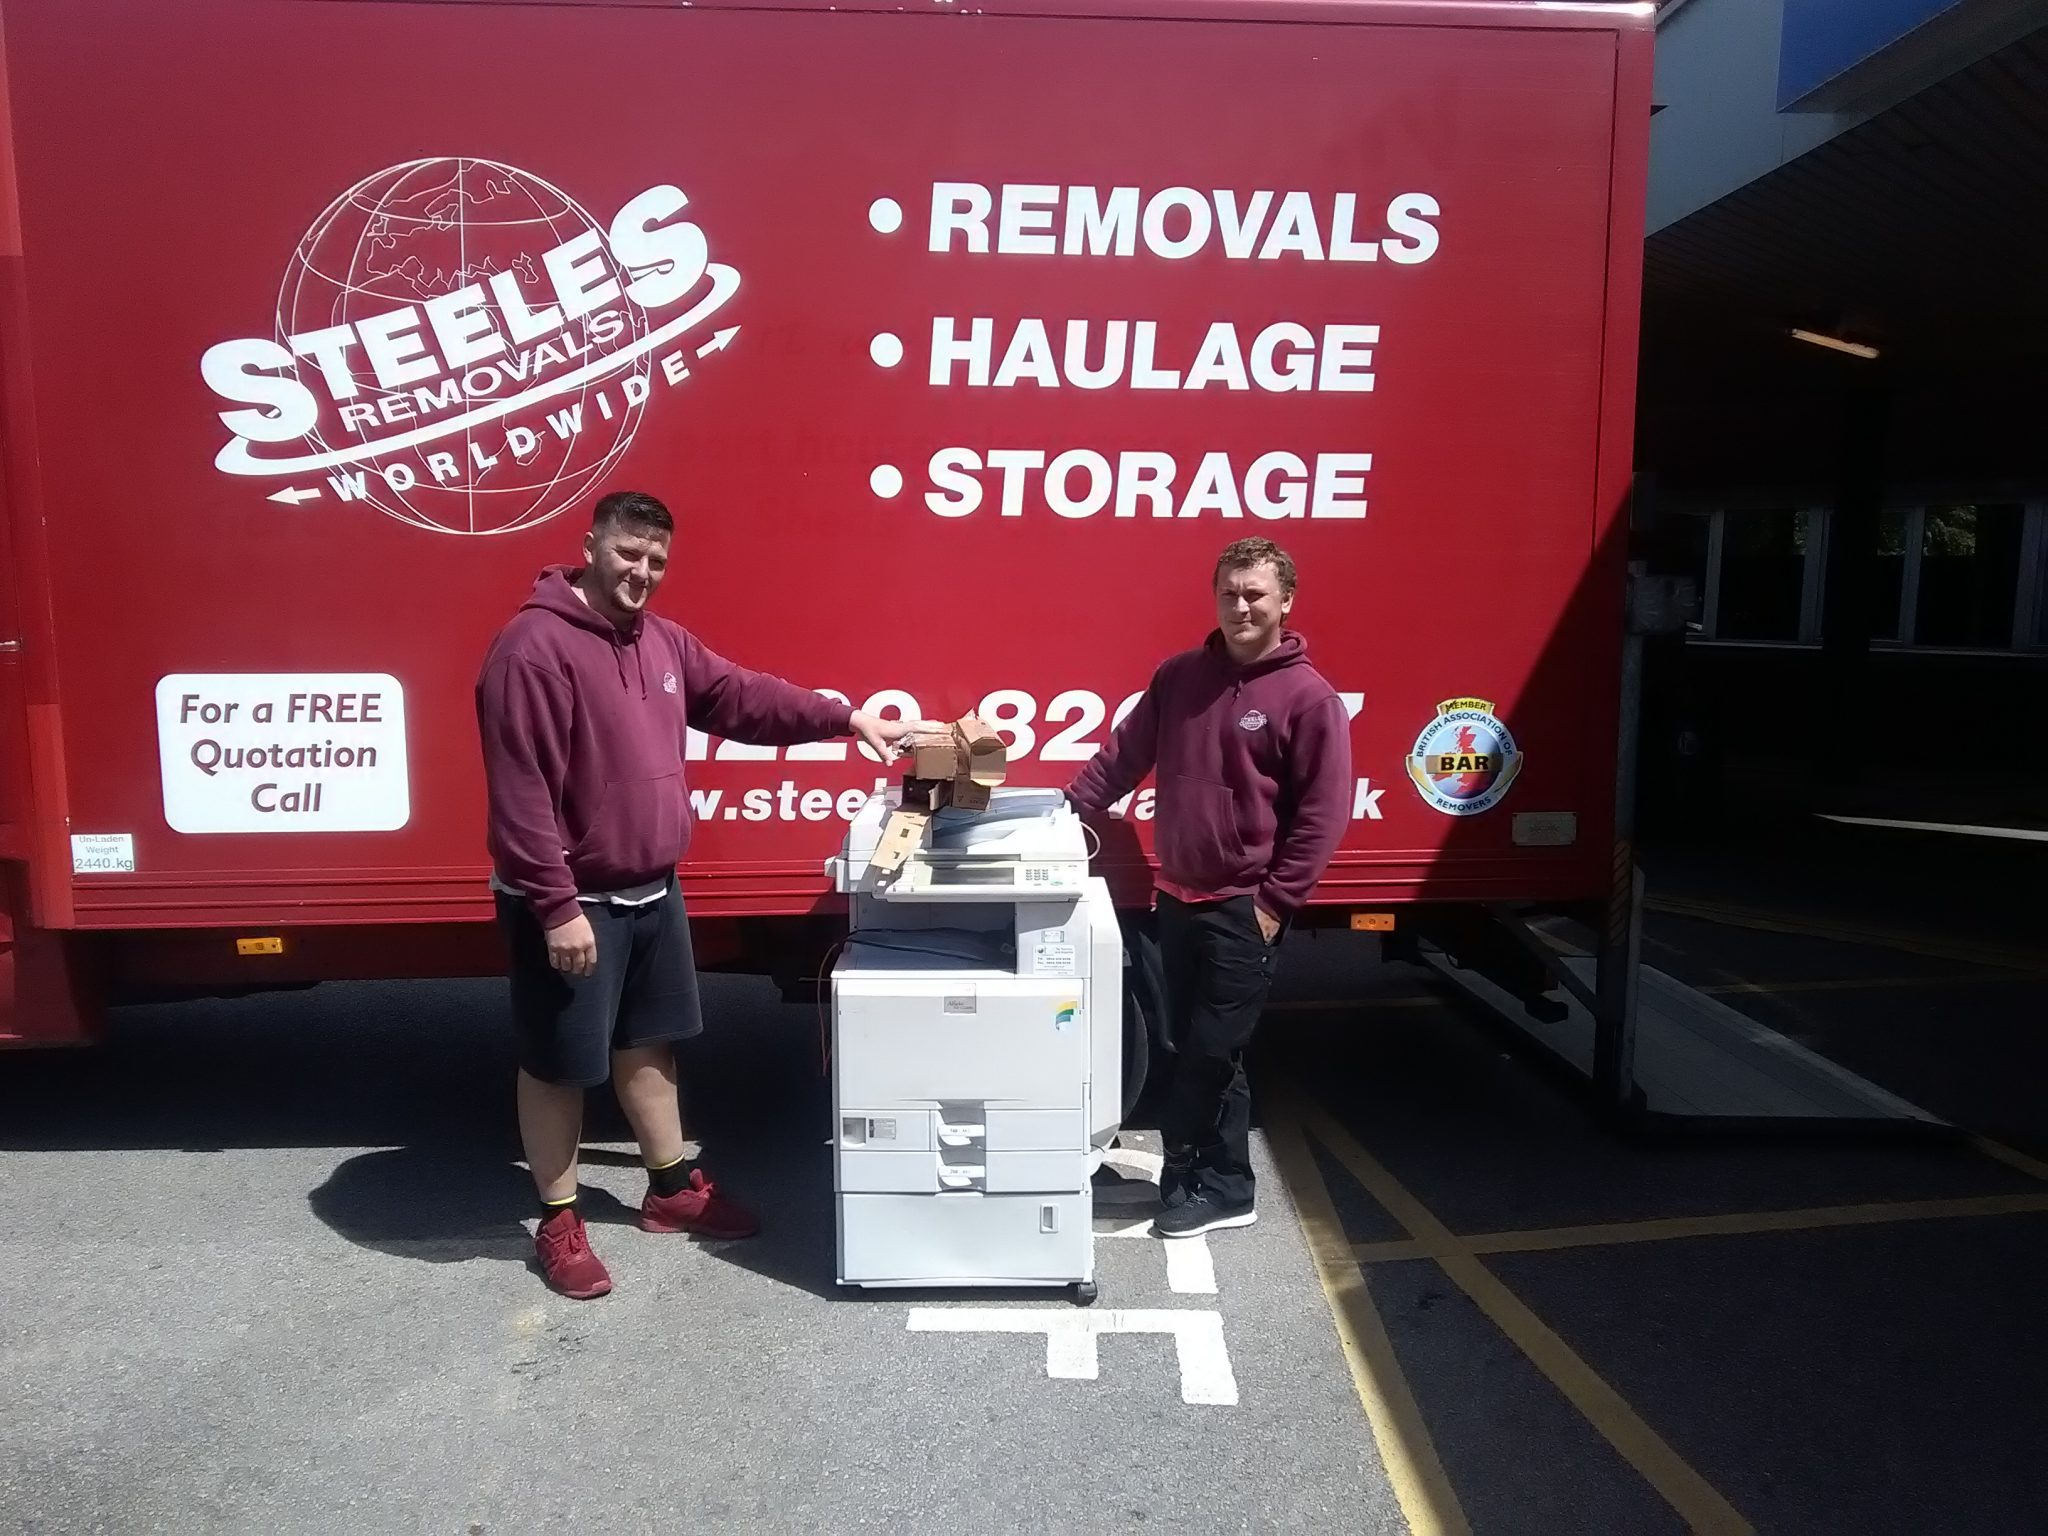 Steeles Removals